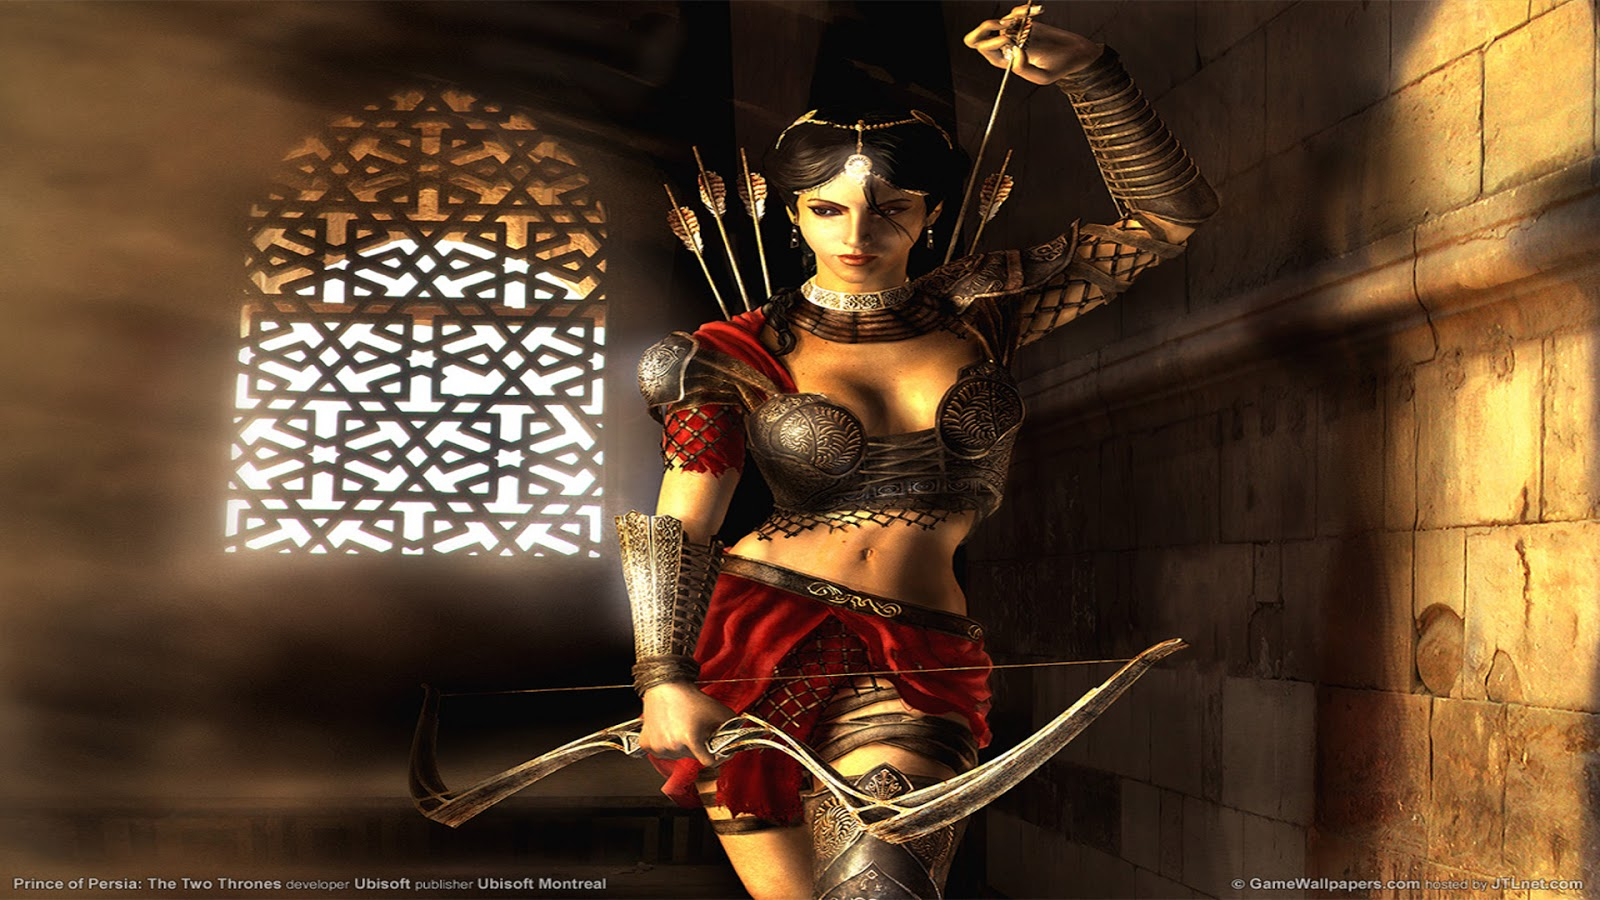 Prince of persia pc version naked sex naked movie